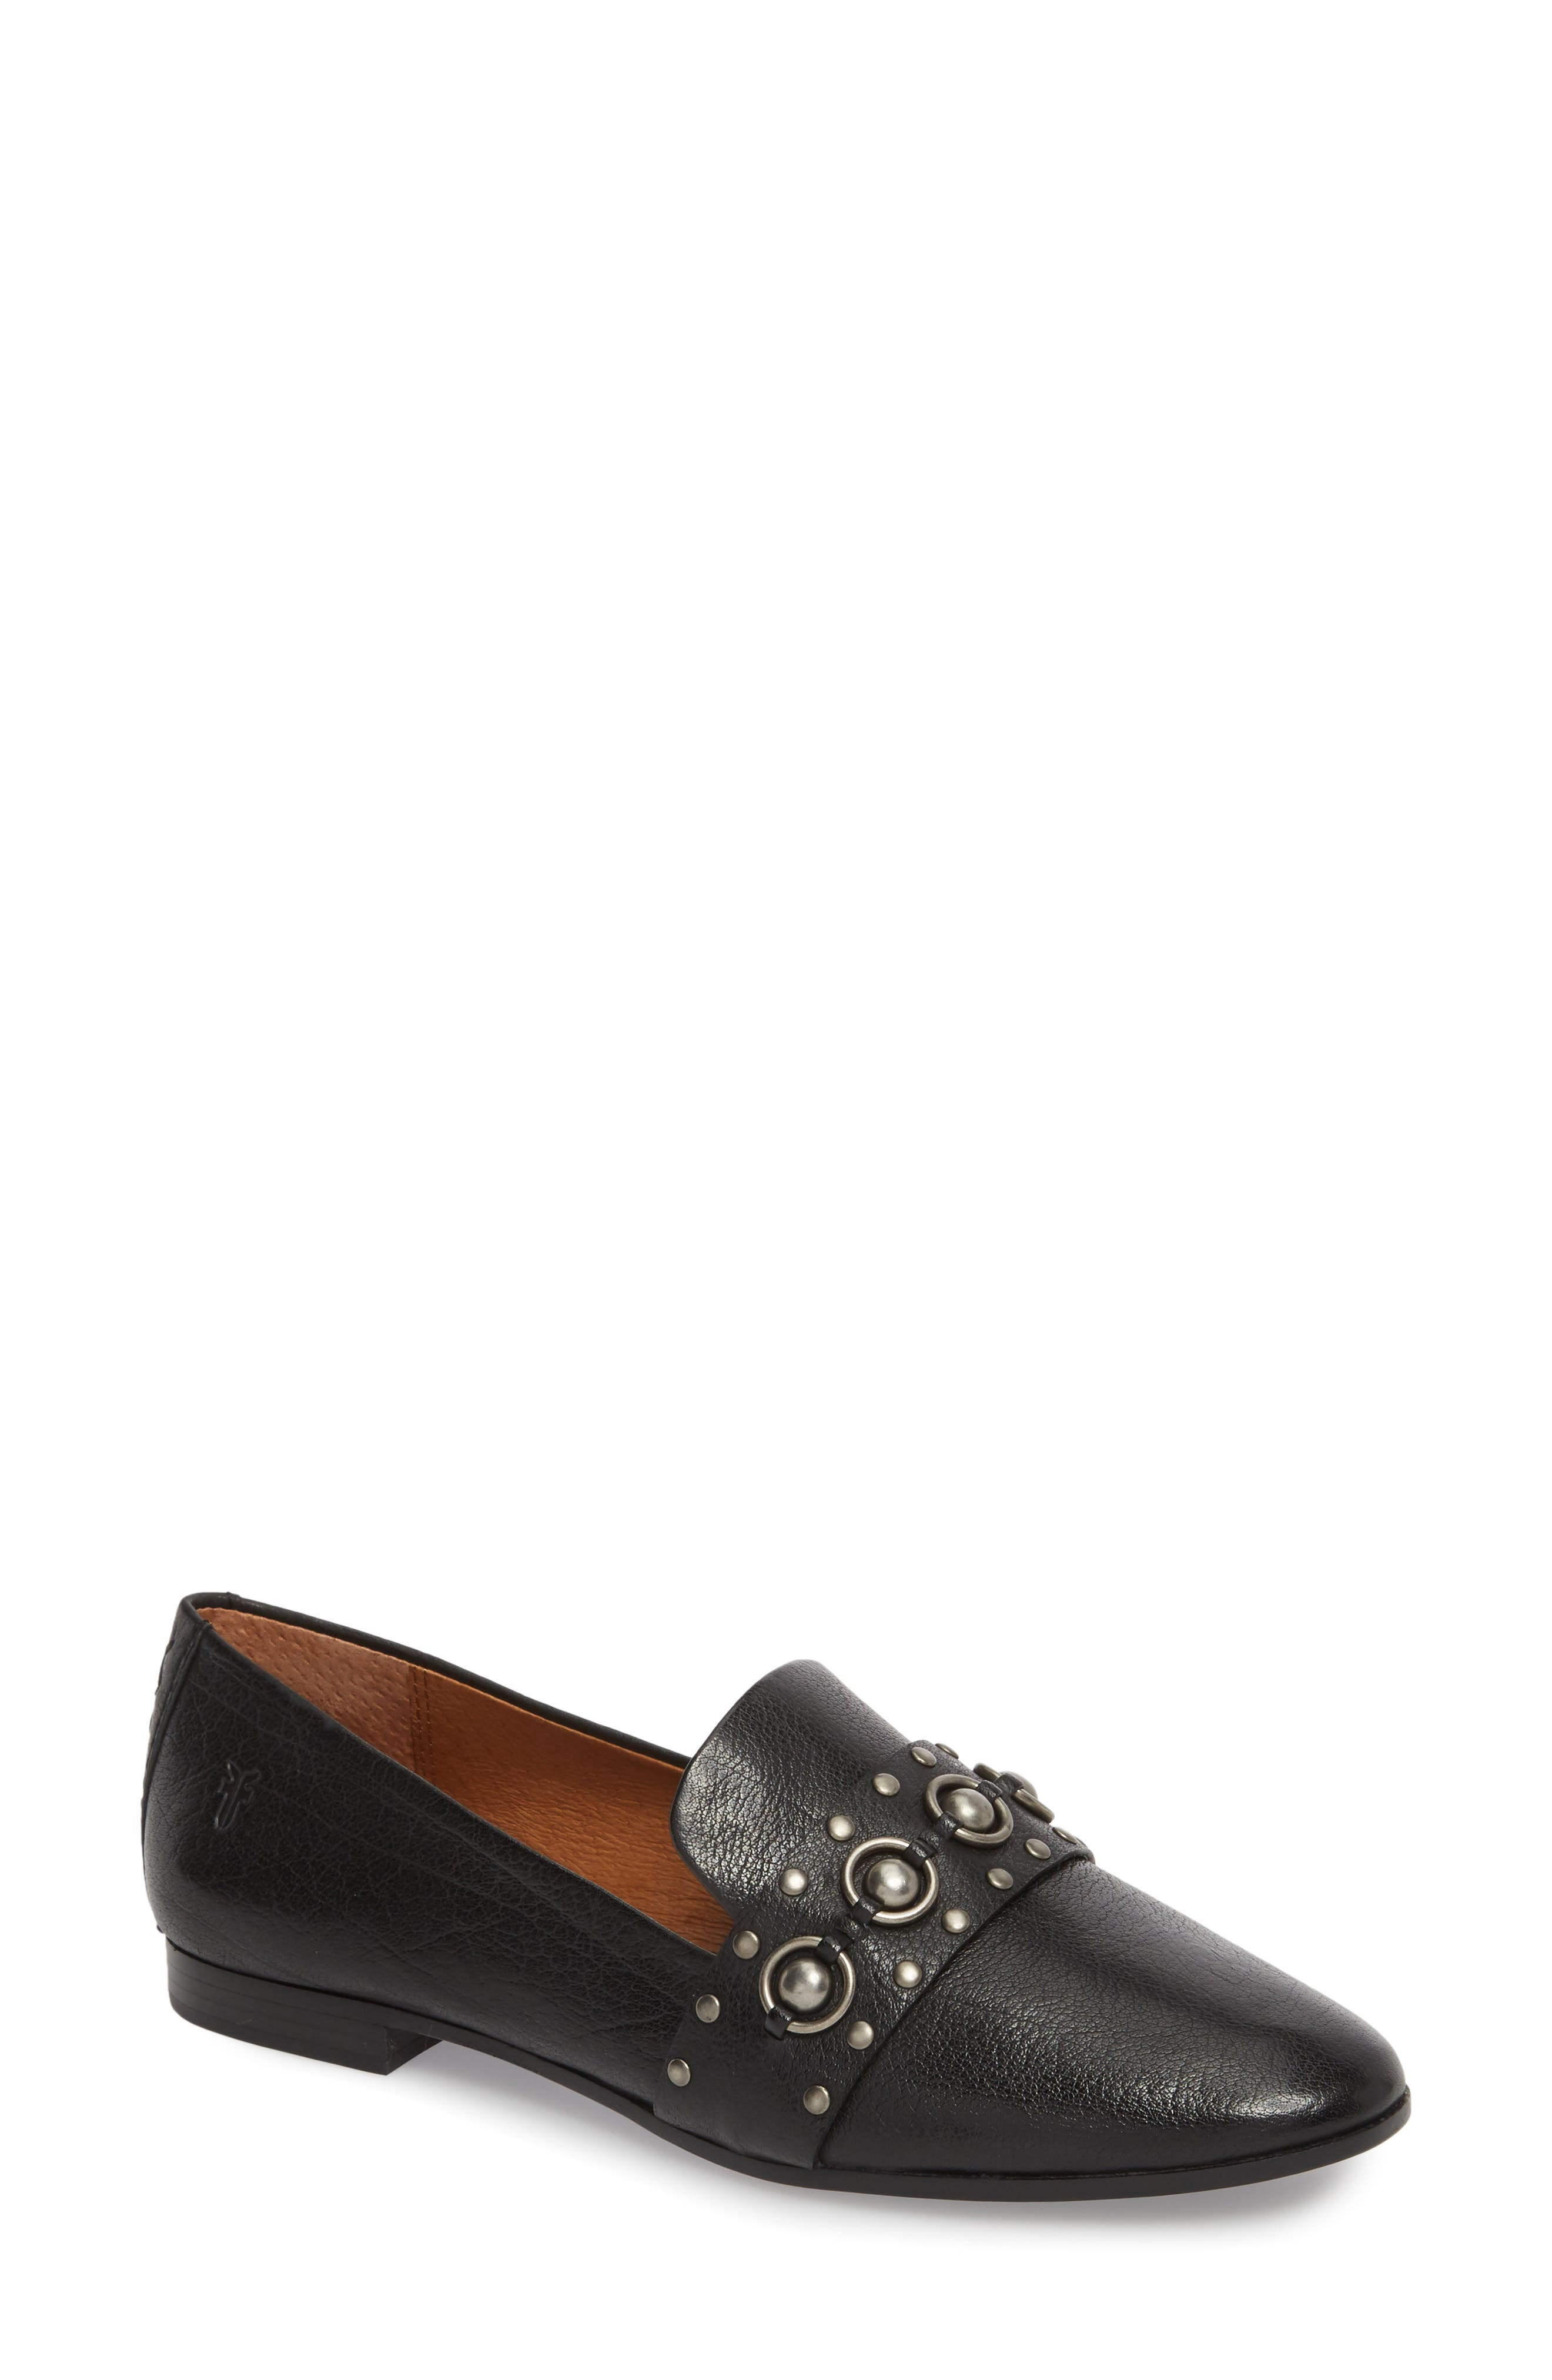 Terri Stud Loafer,                         Main,                         color, Black Leather